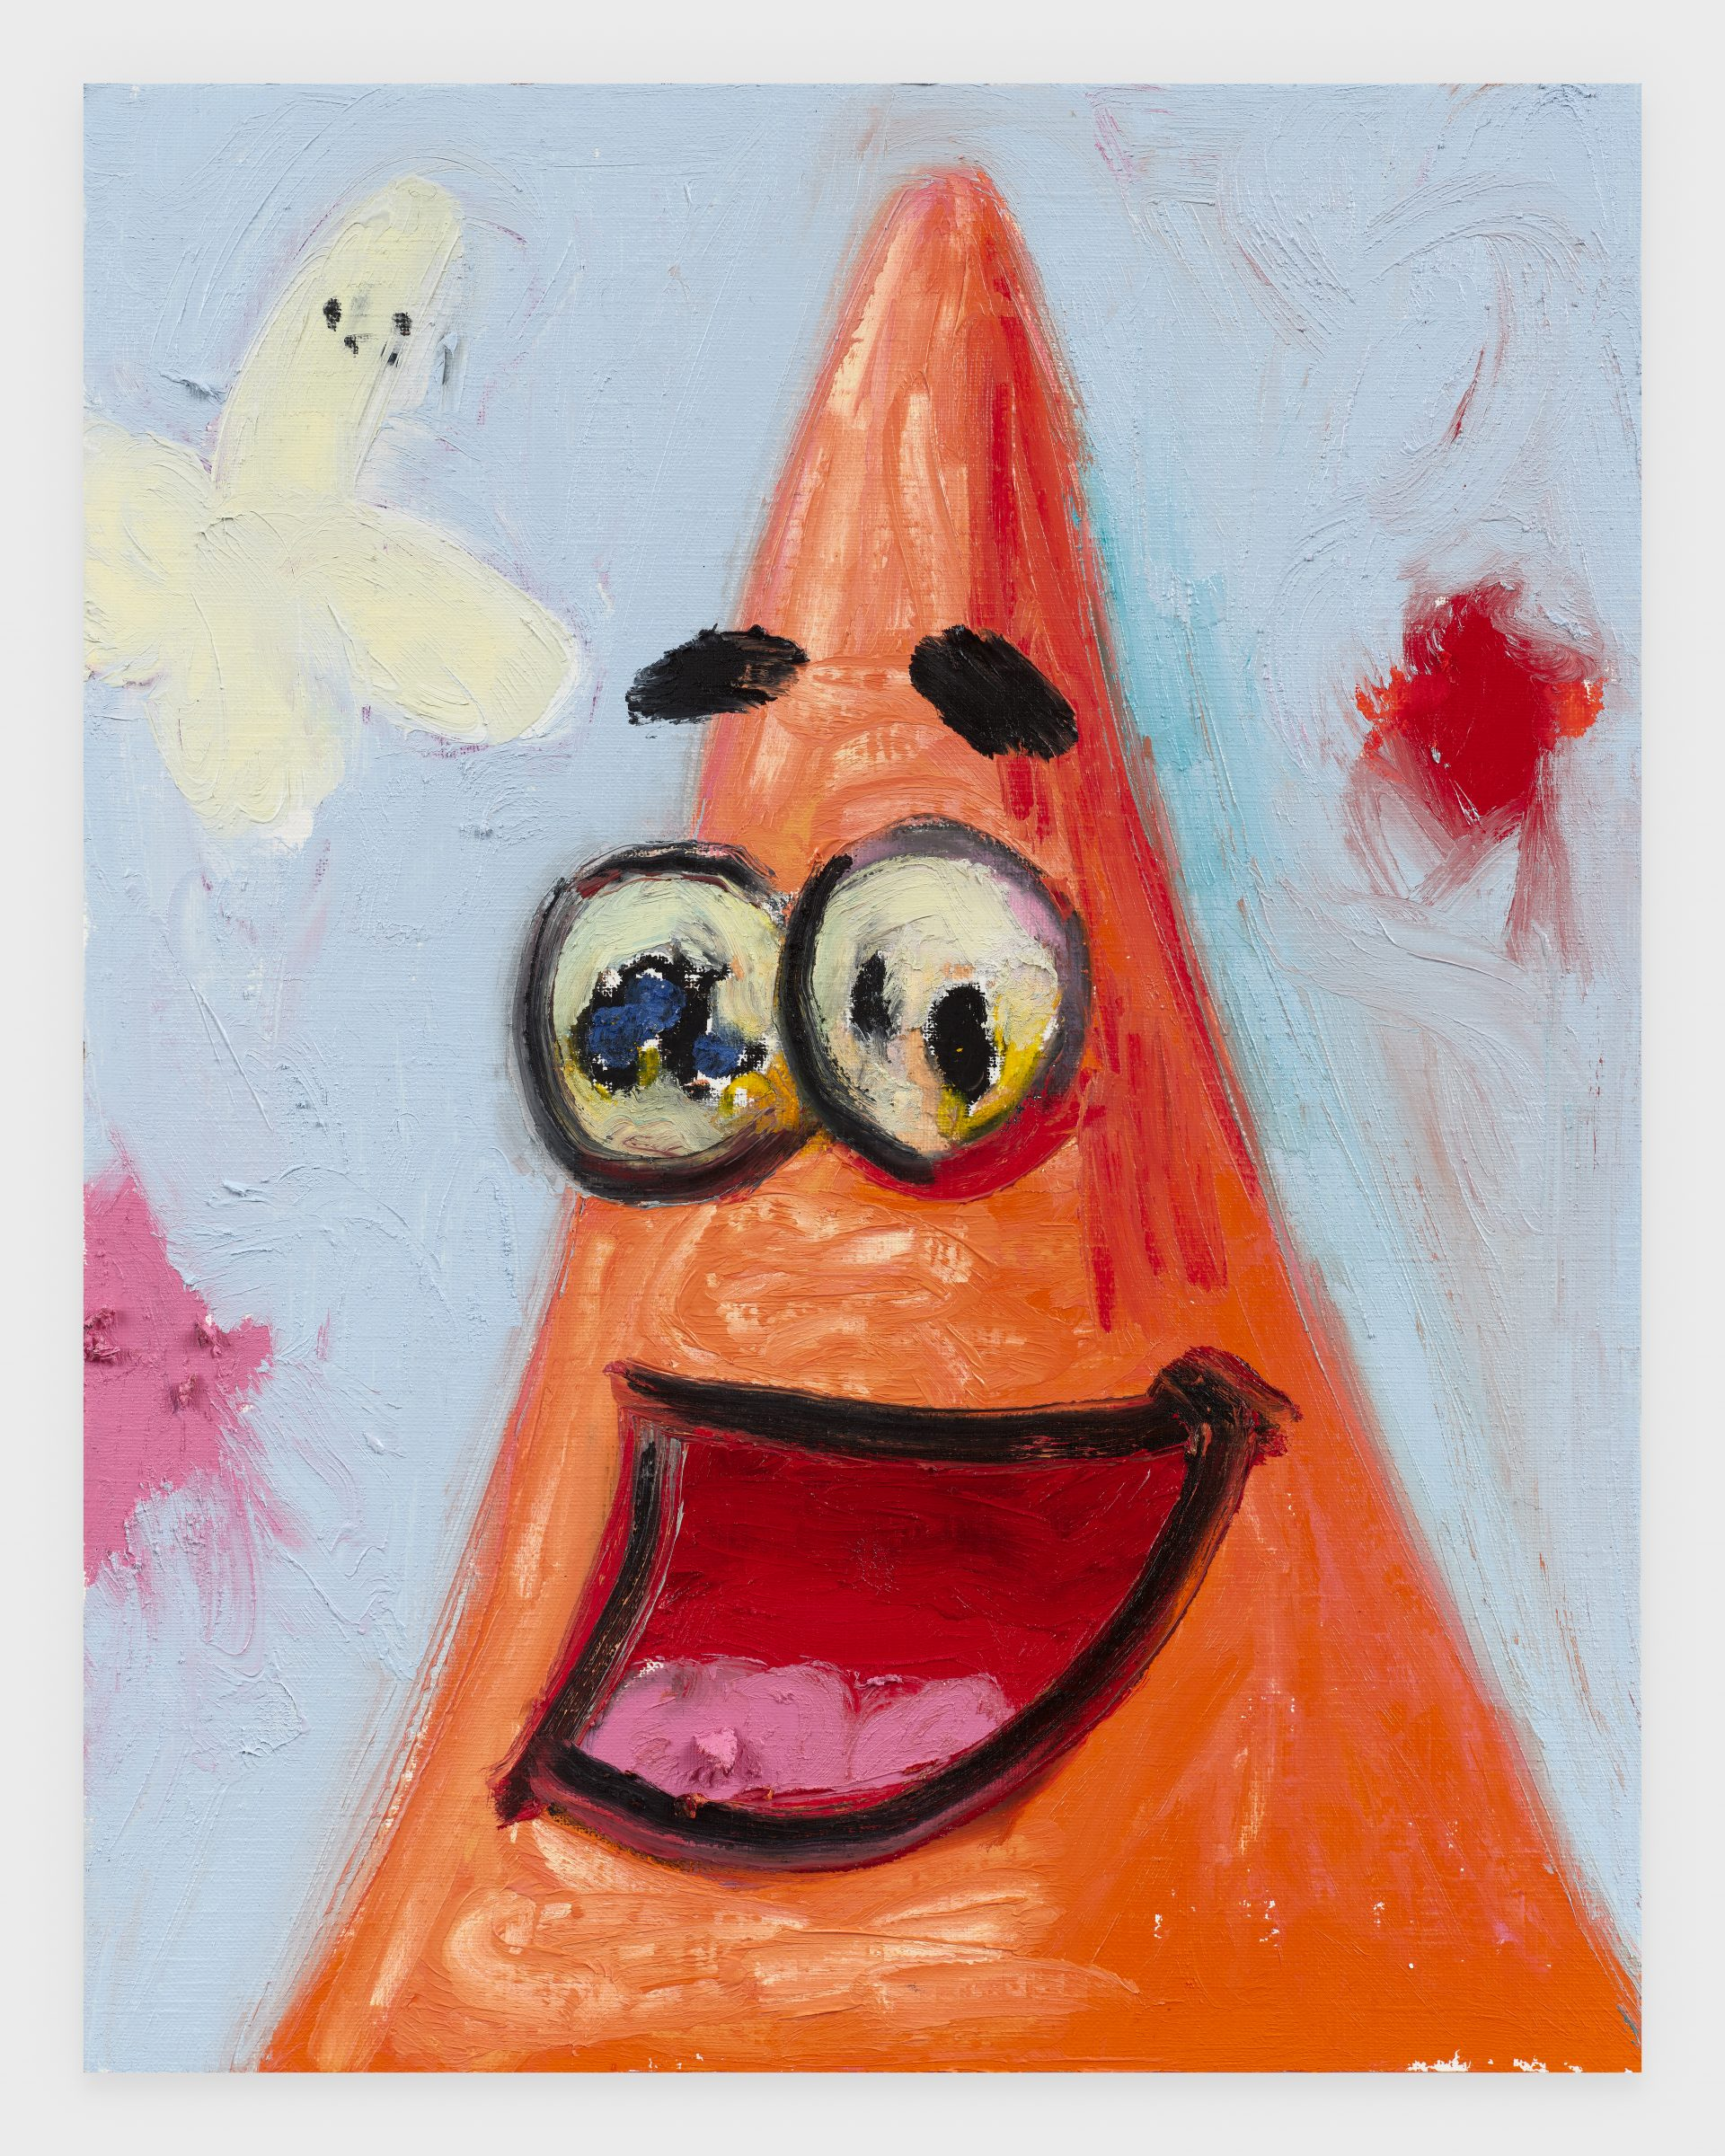 Patrick, 2020, Oil stick on archival paper, 11 x 14 inches